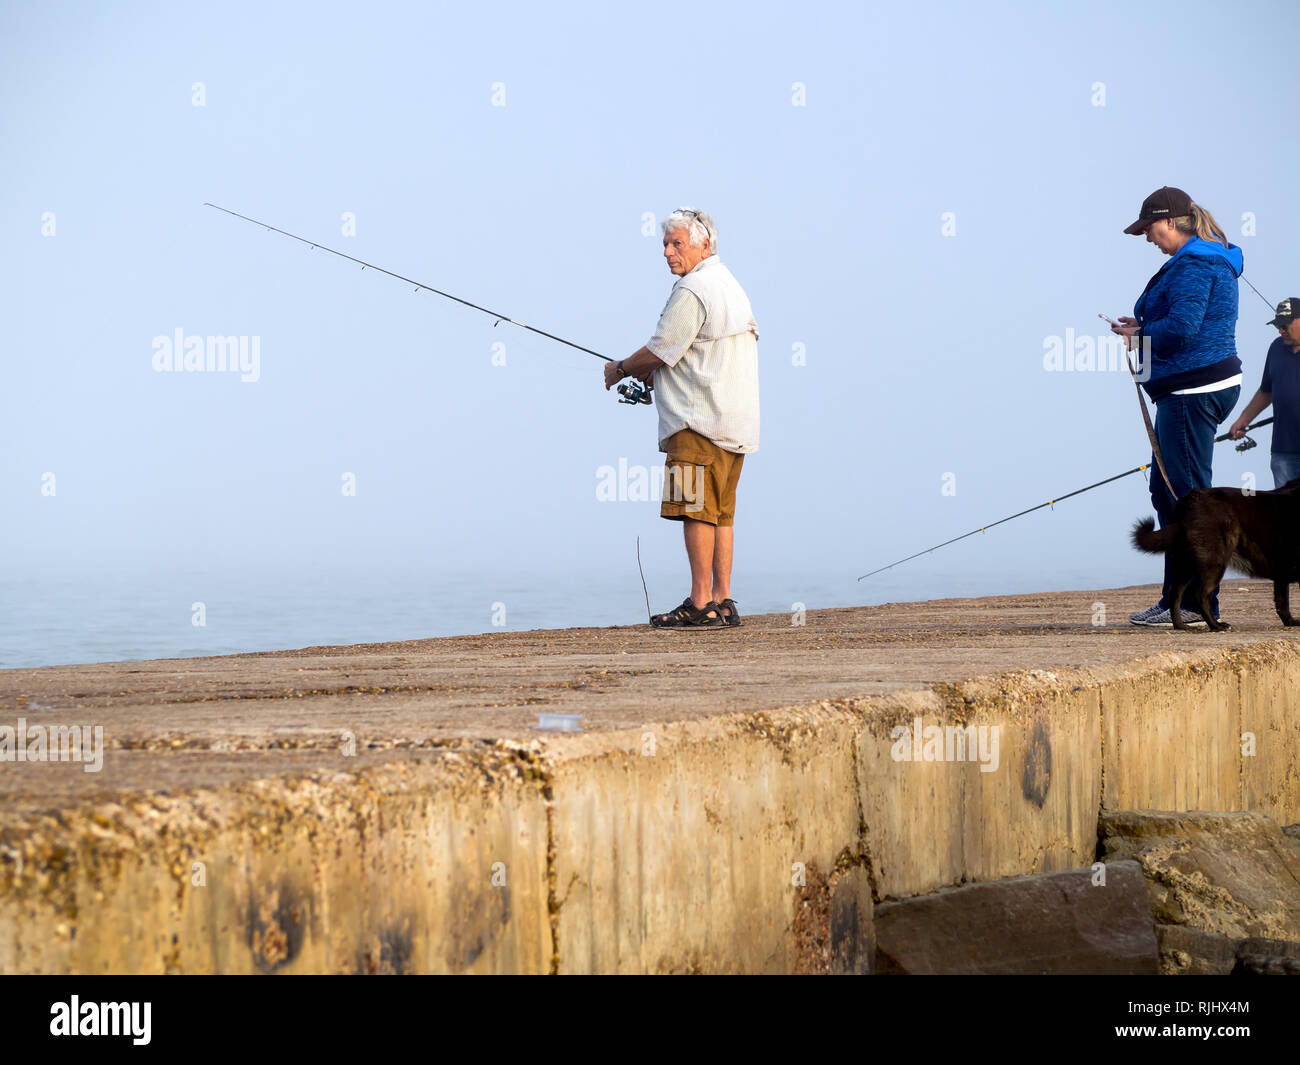 A silver-haired man dressed in shirt, shorts and sandals fishes from the south jetty on a foggy, February day in Port Aransas, Texas USA. - Stock Image